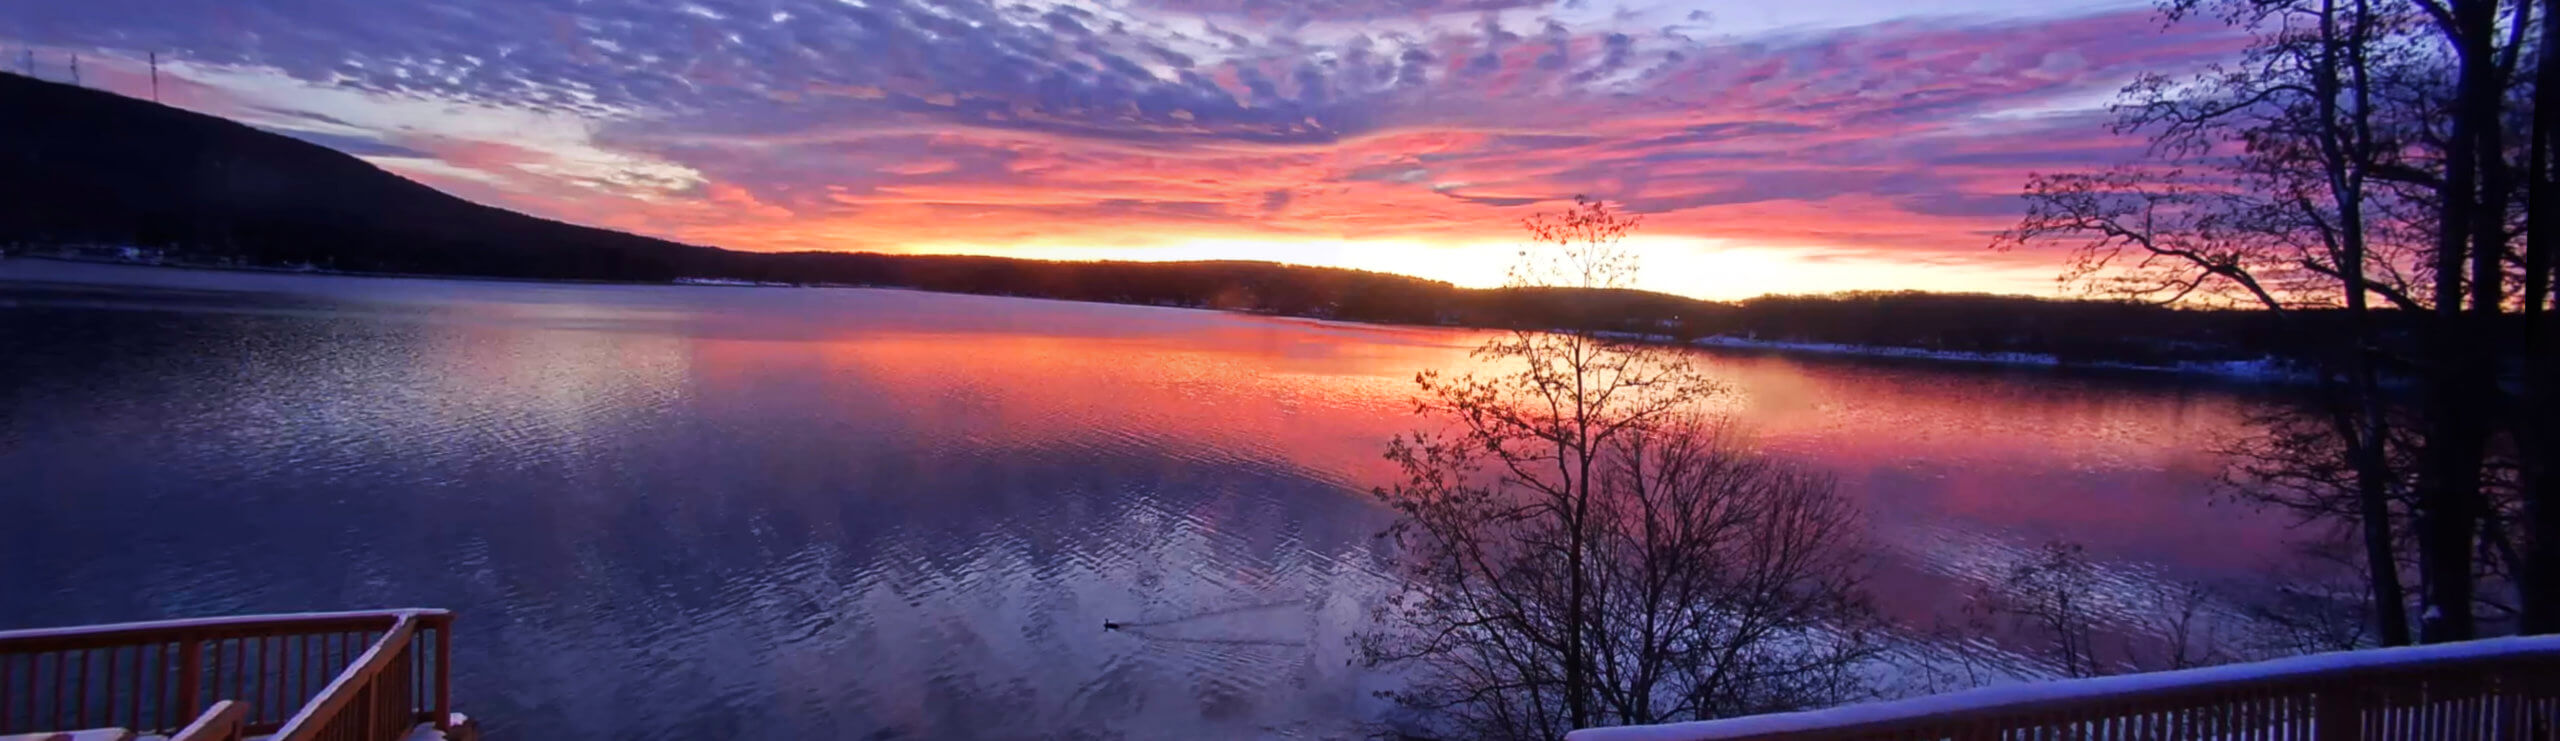 Good Morning Deep Creek Lake, MD from the Railey Realty Webcam